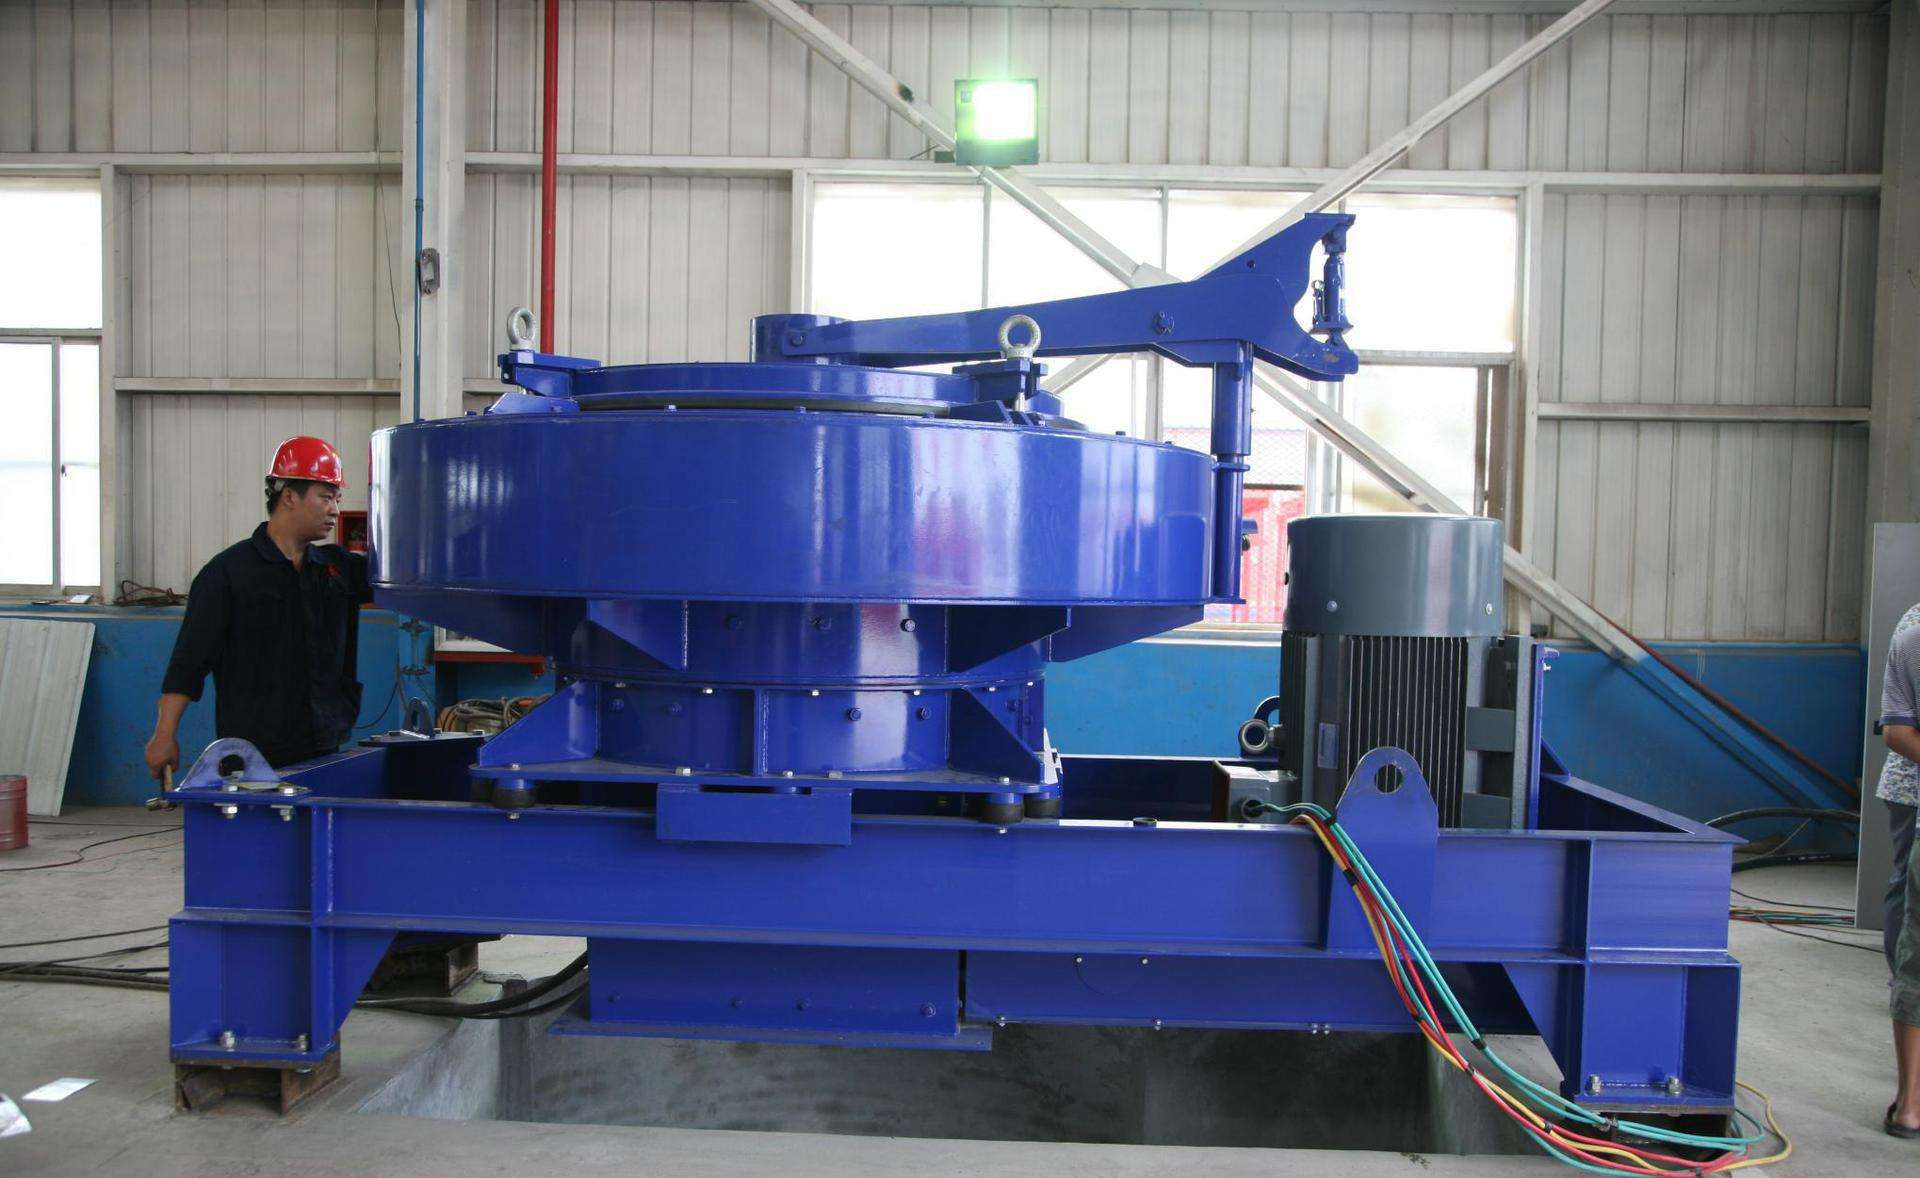 GZP Verticale Zand Casting Patroon Maken Machine heeft strongpoint parallel proces India